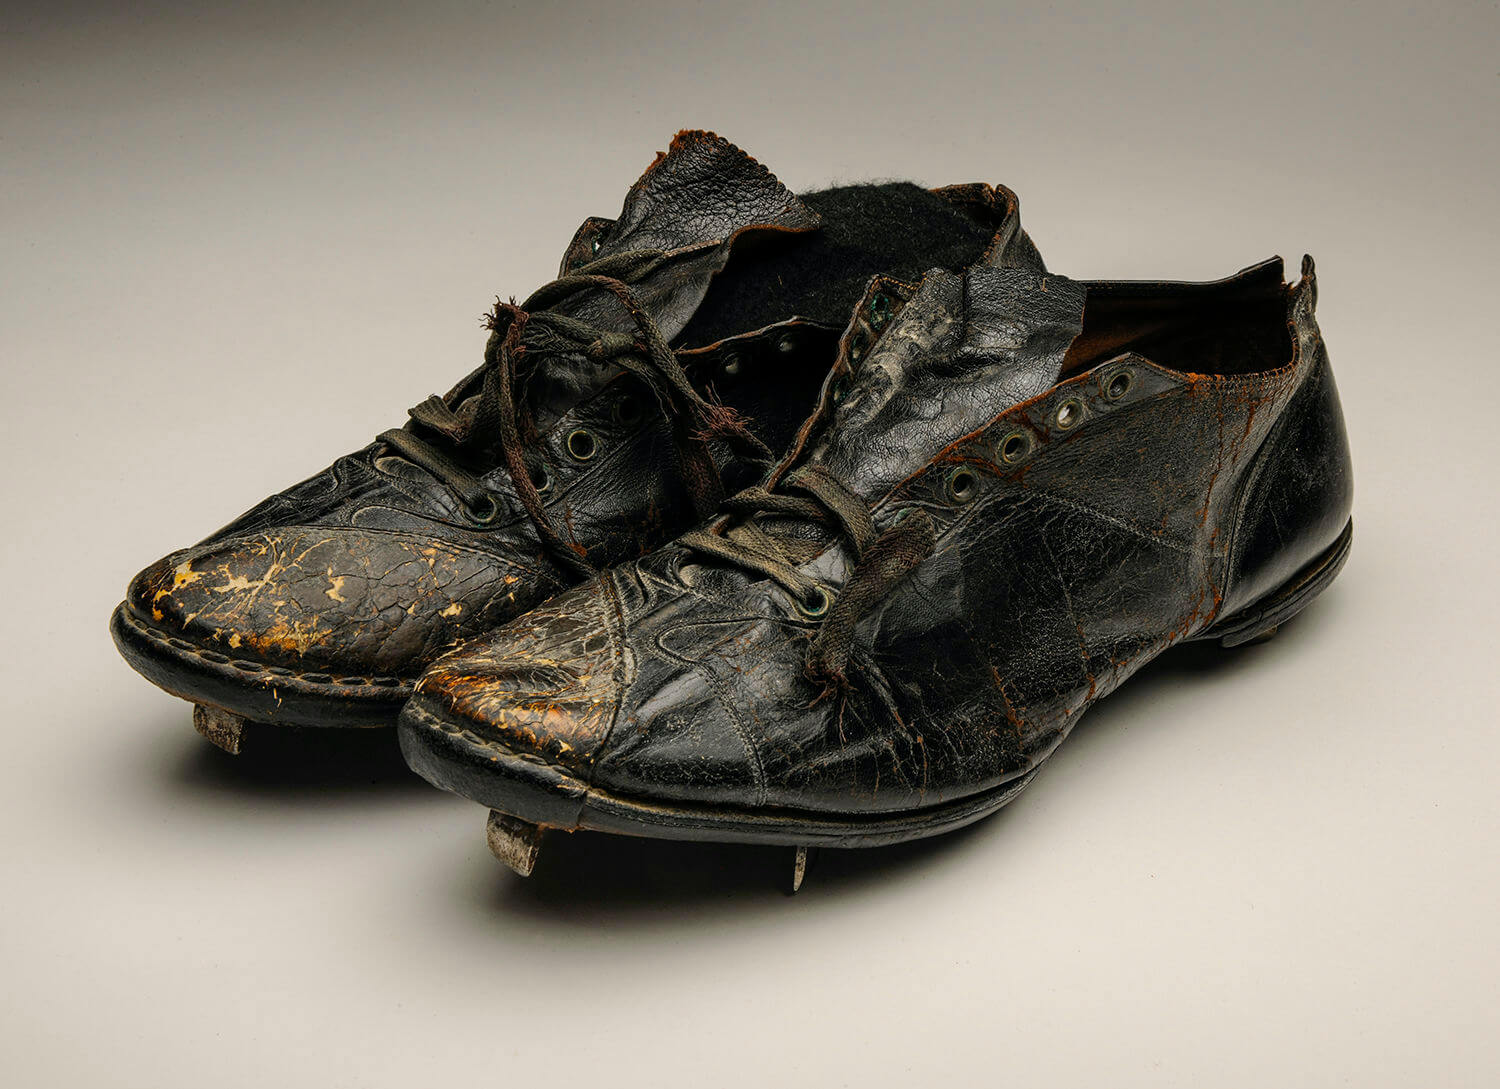 babe ruths cleats at the national baseball hall of fame from 1939